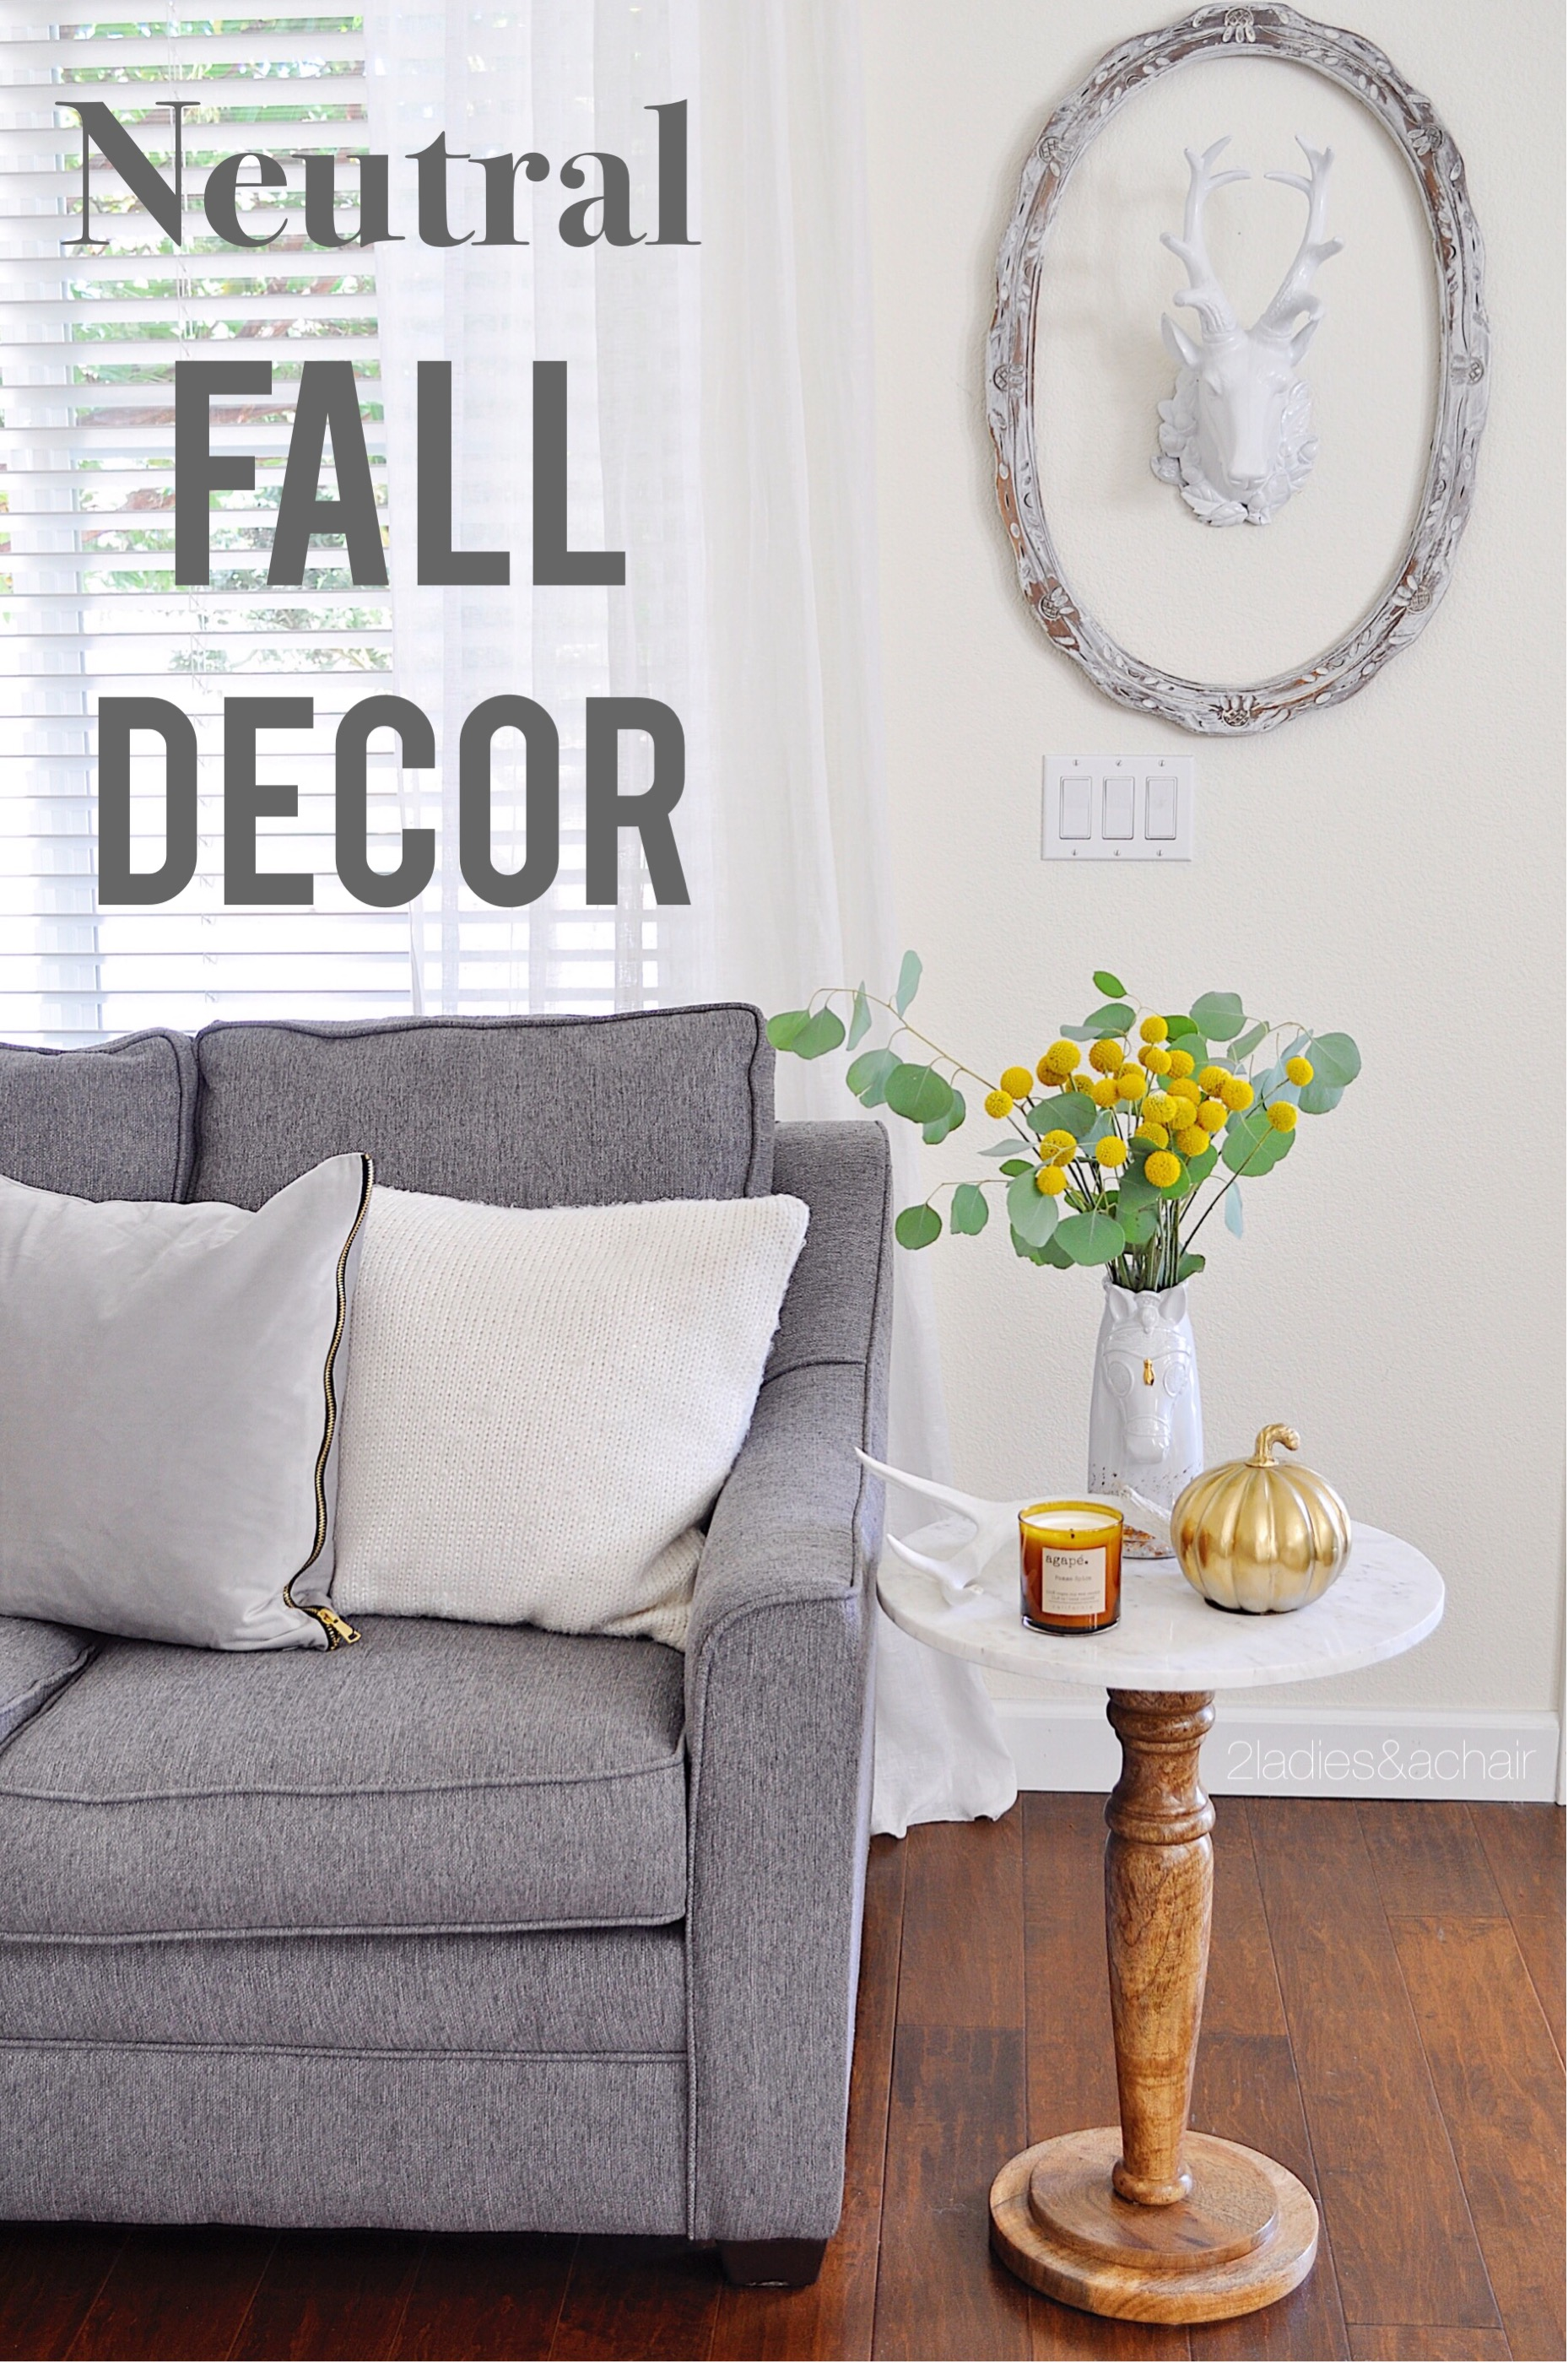 neutral fall decor IMG_0816.JPG